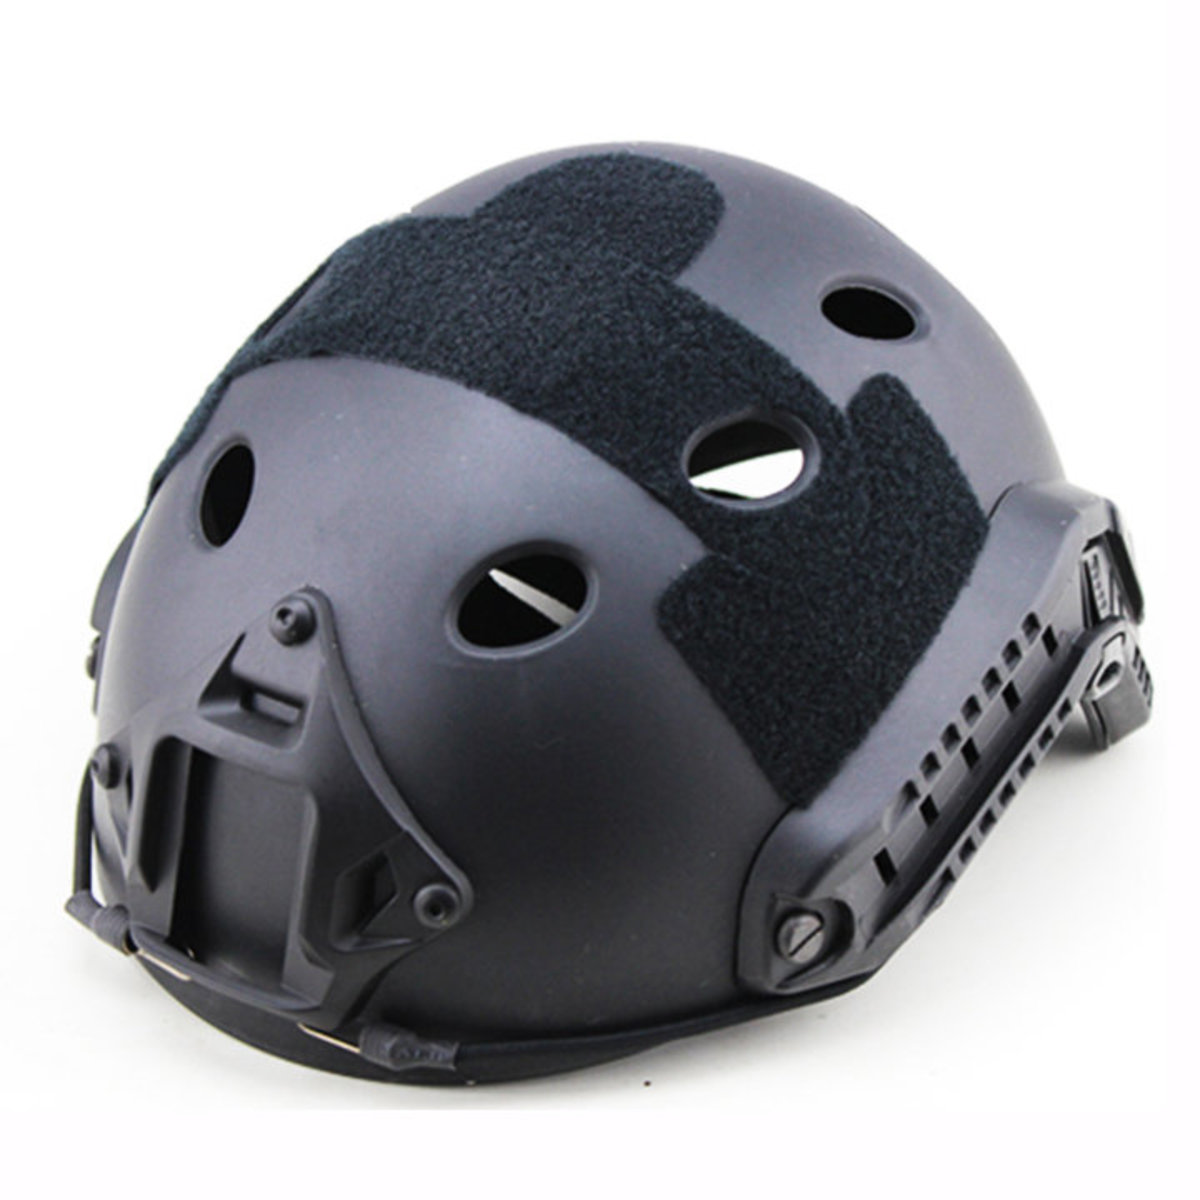 View larger image of Valken ATH Enhanced Helmet